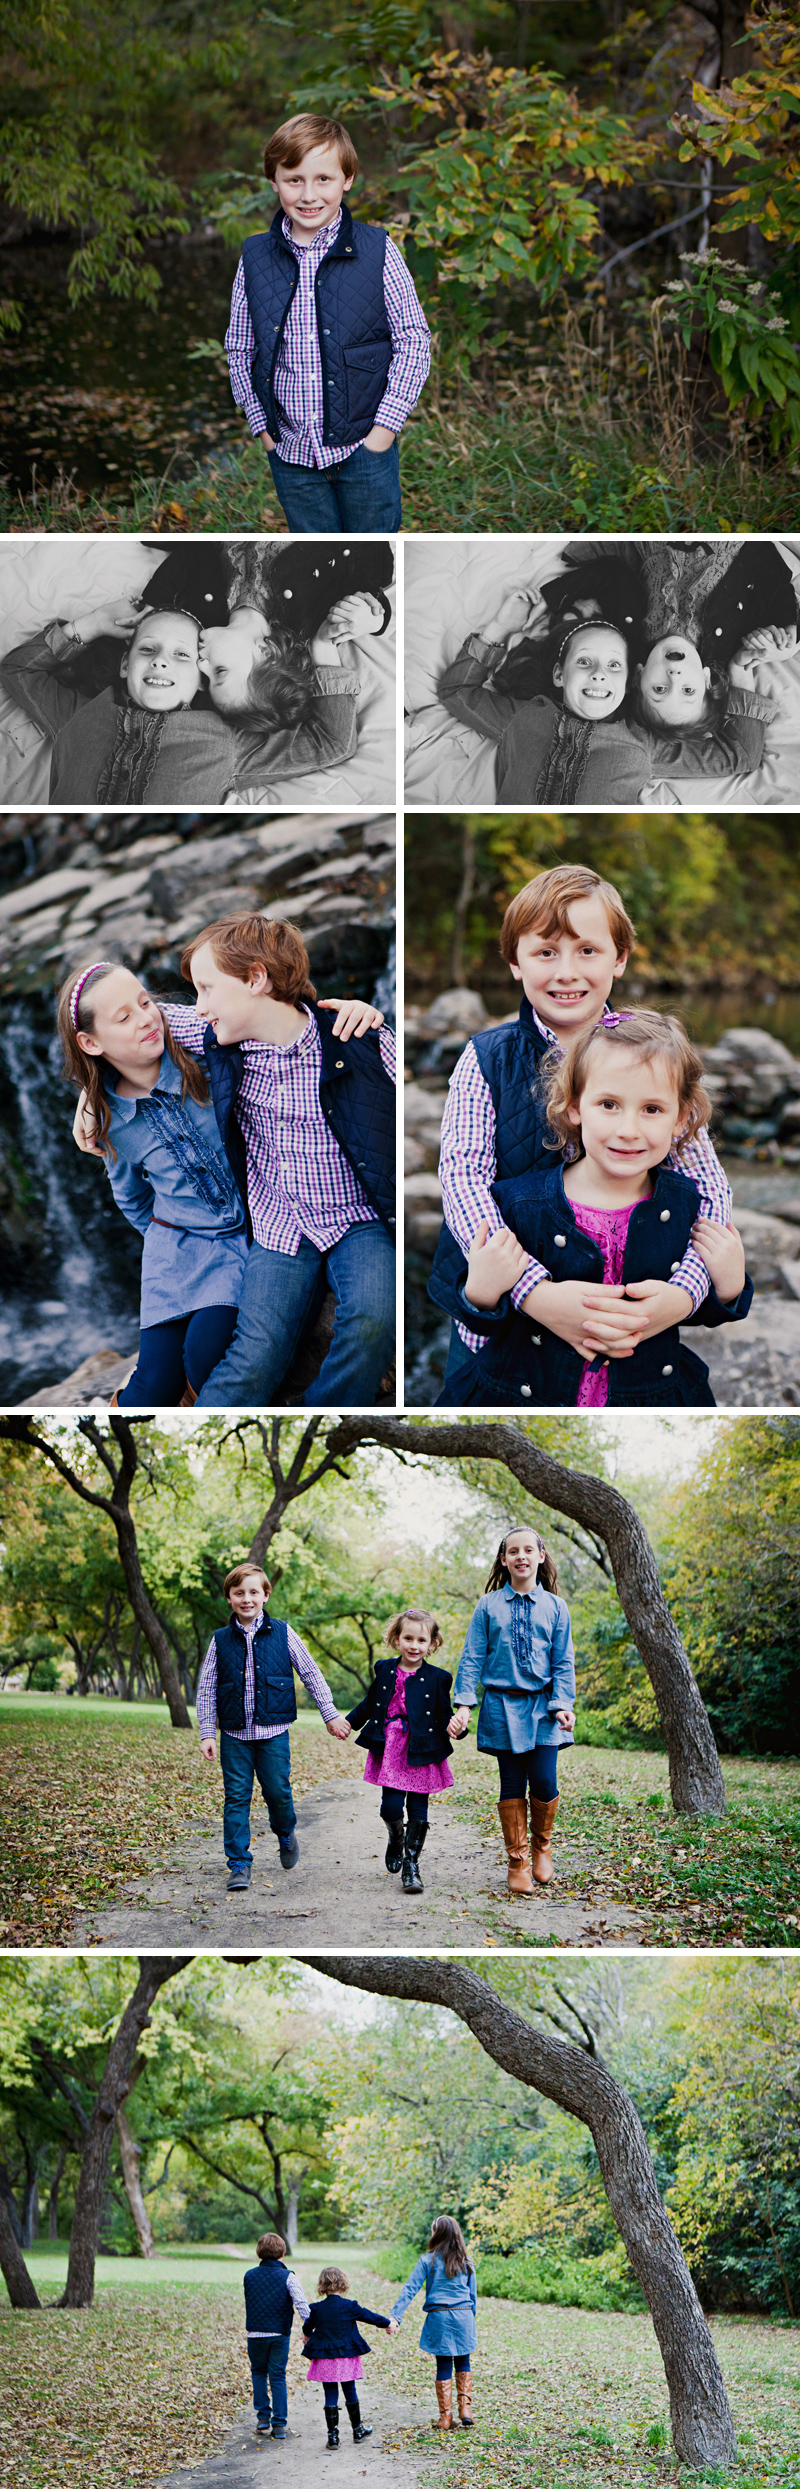 Dallas-Family-Photographerc054